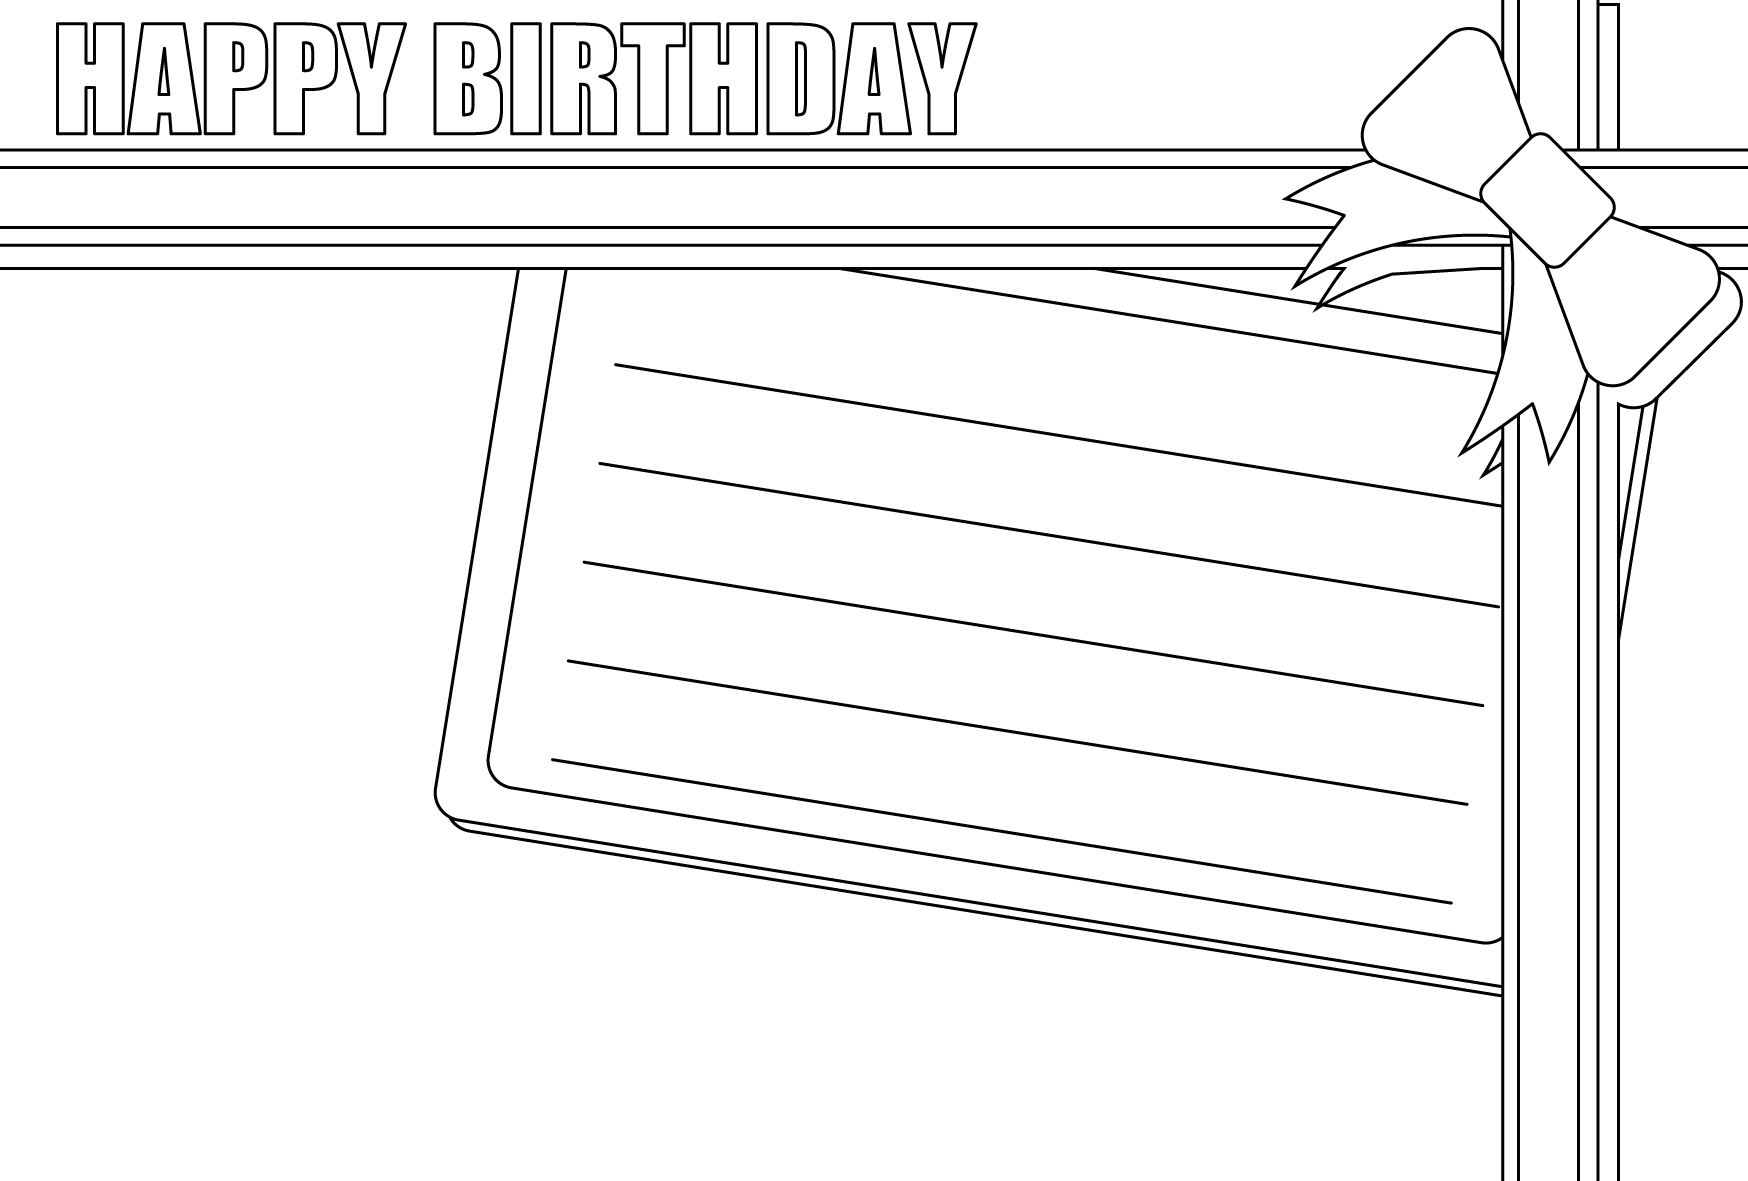 birthday-card_02-blackwhite